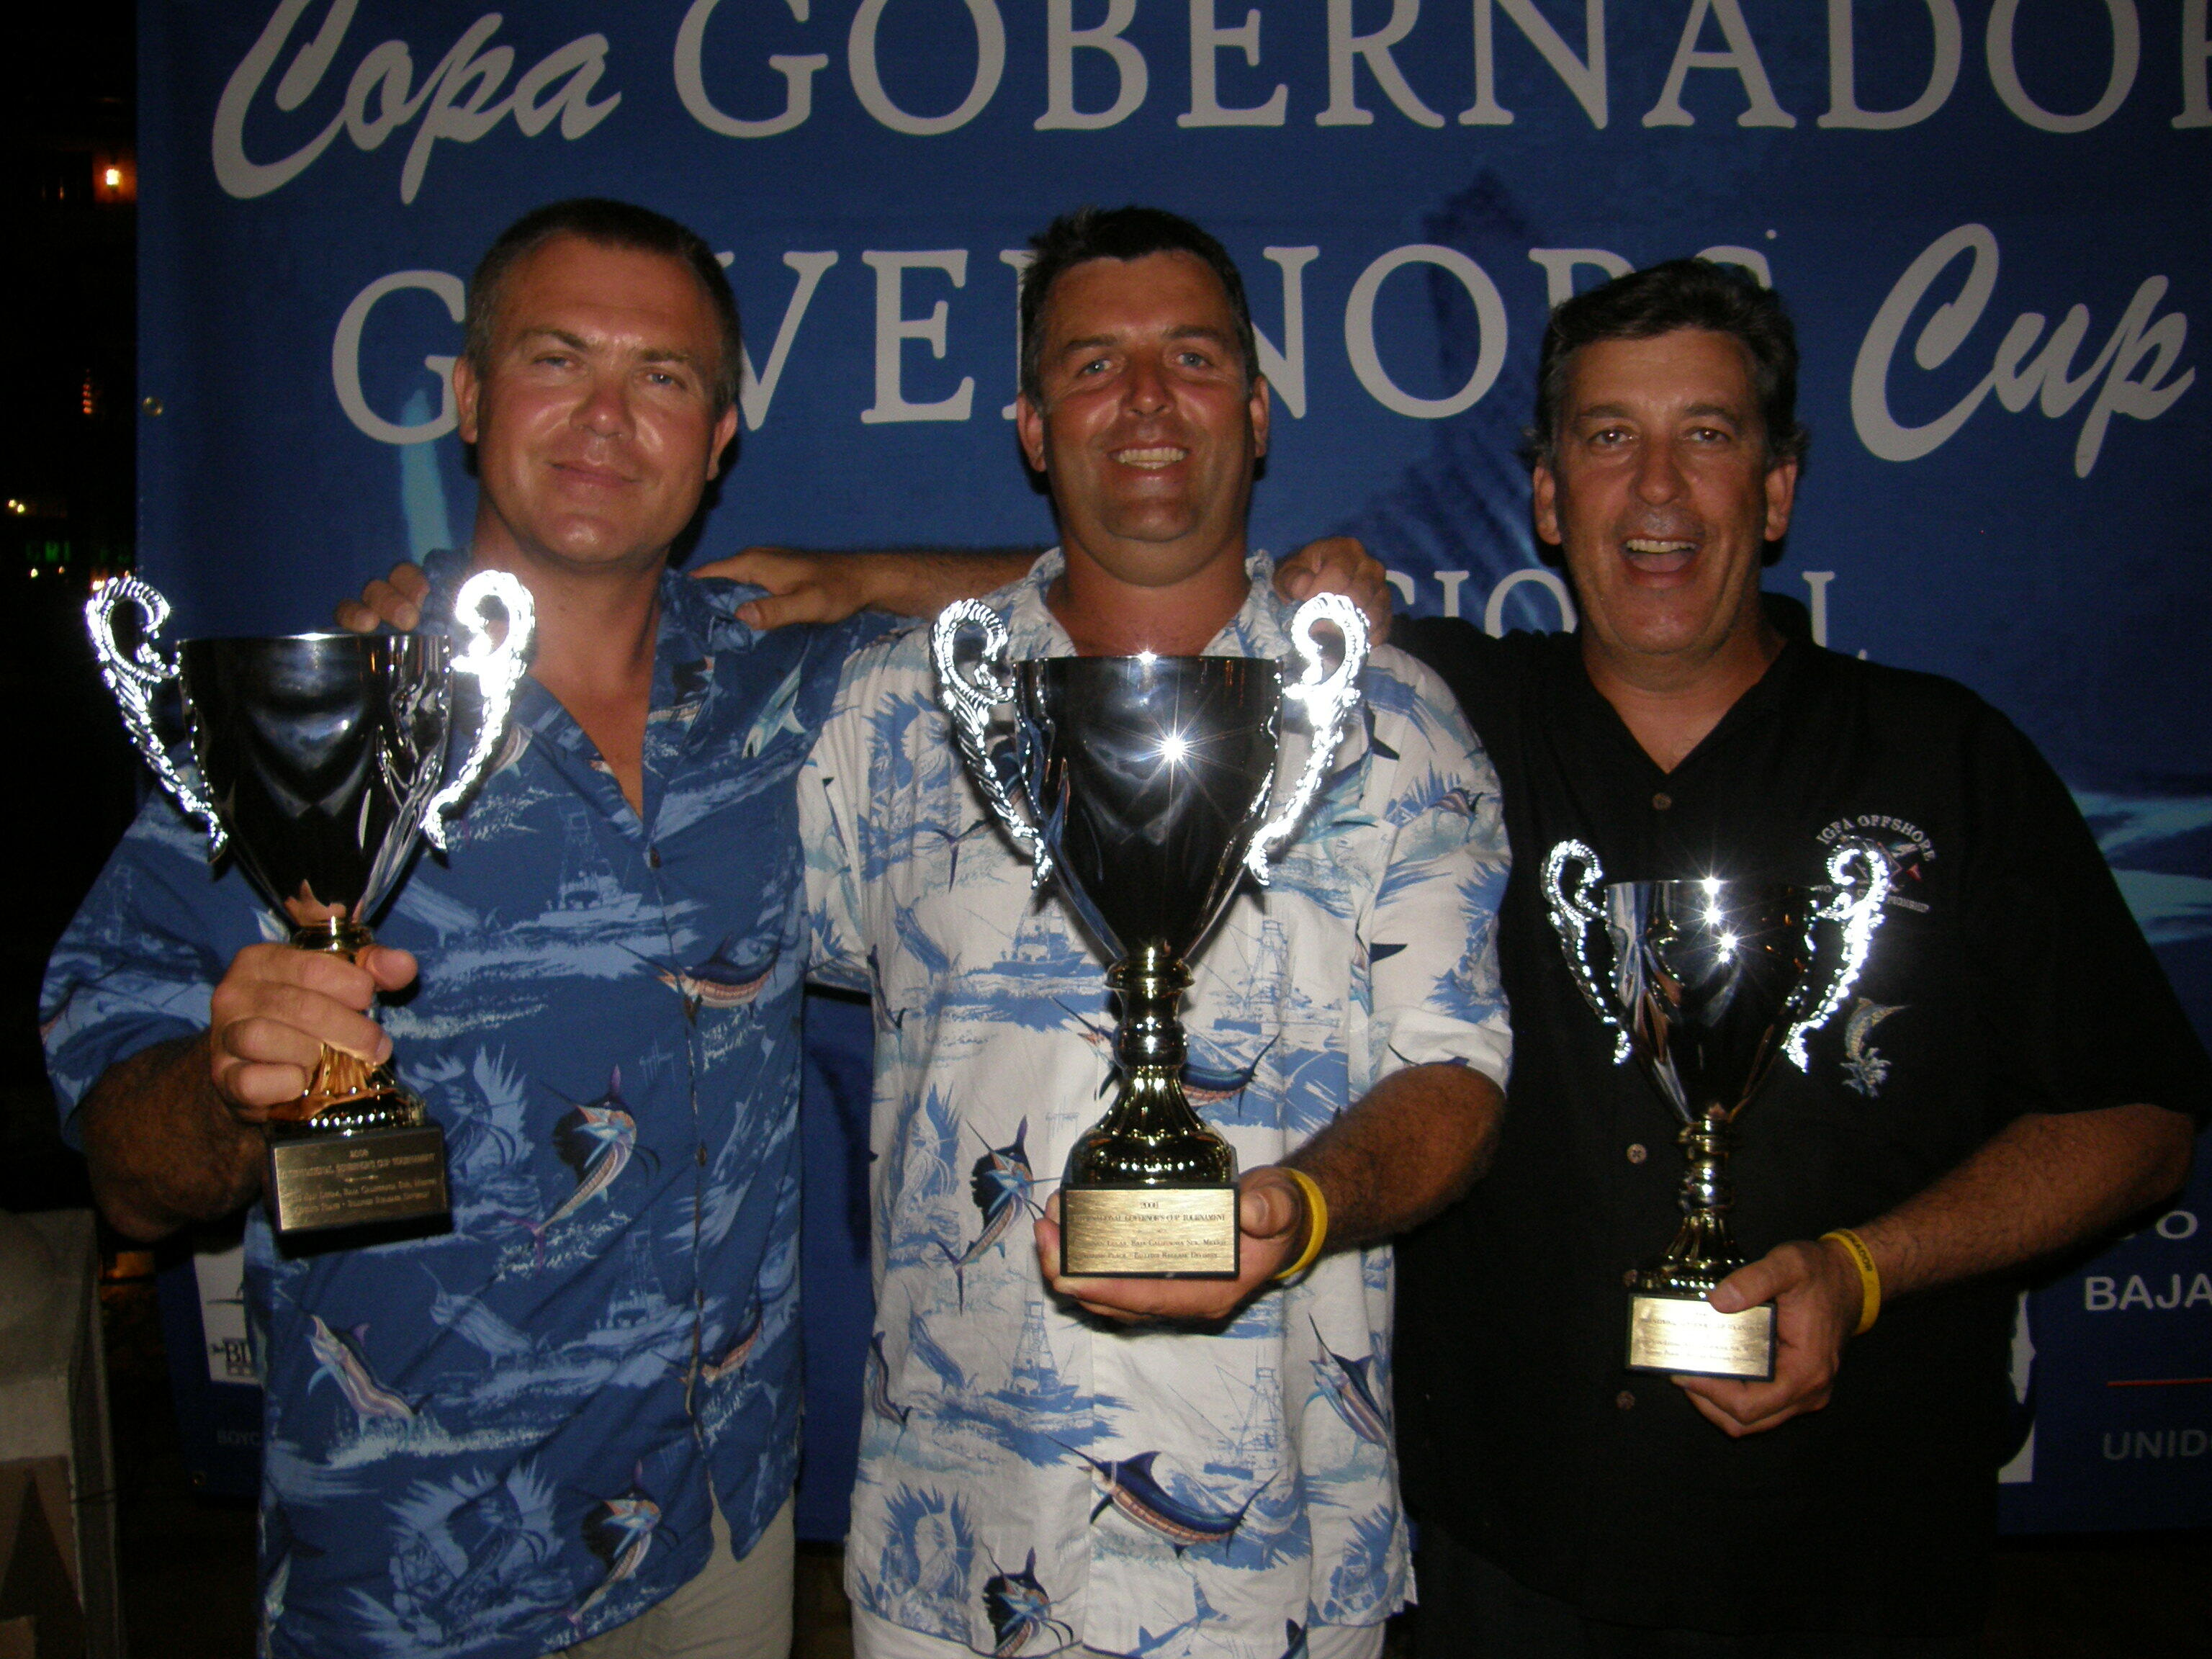 International Governor's Cup Tournament Pacífico - 2º lugar